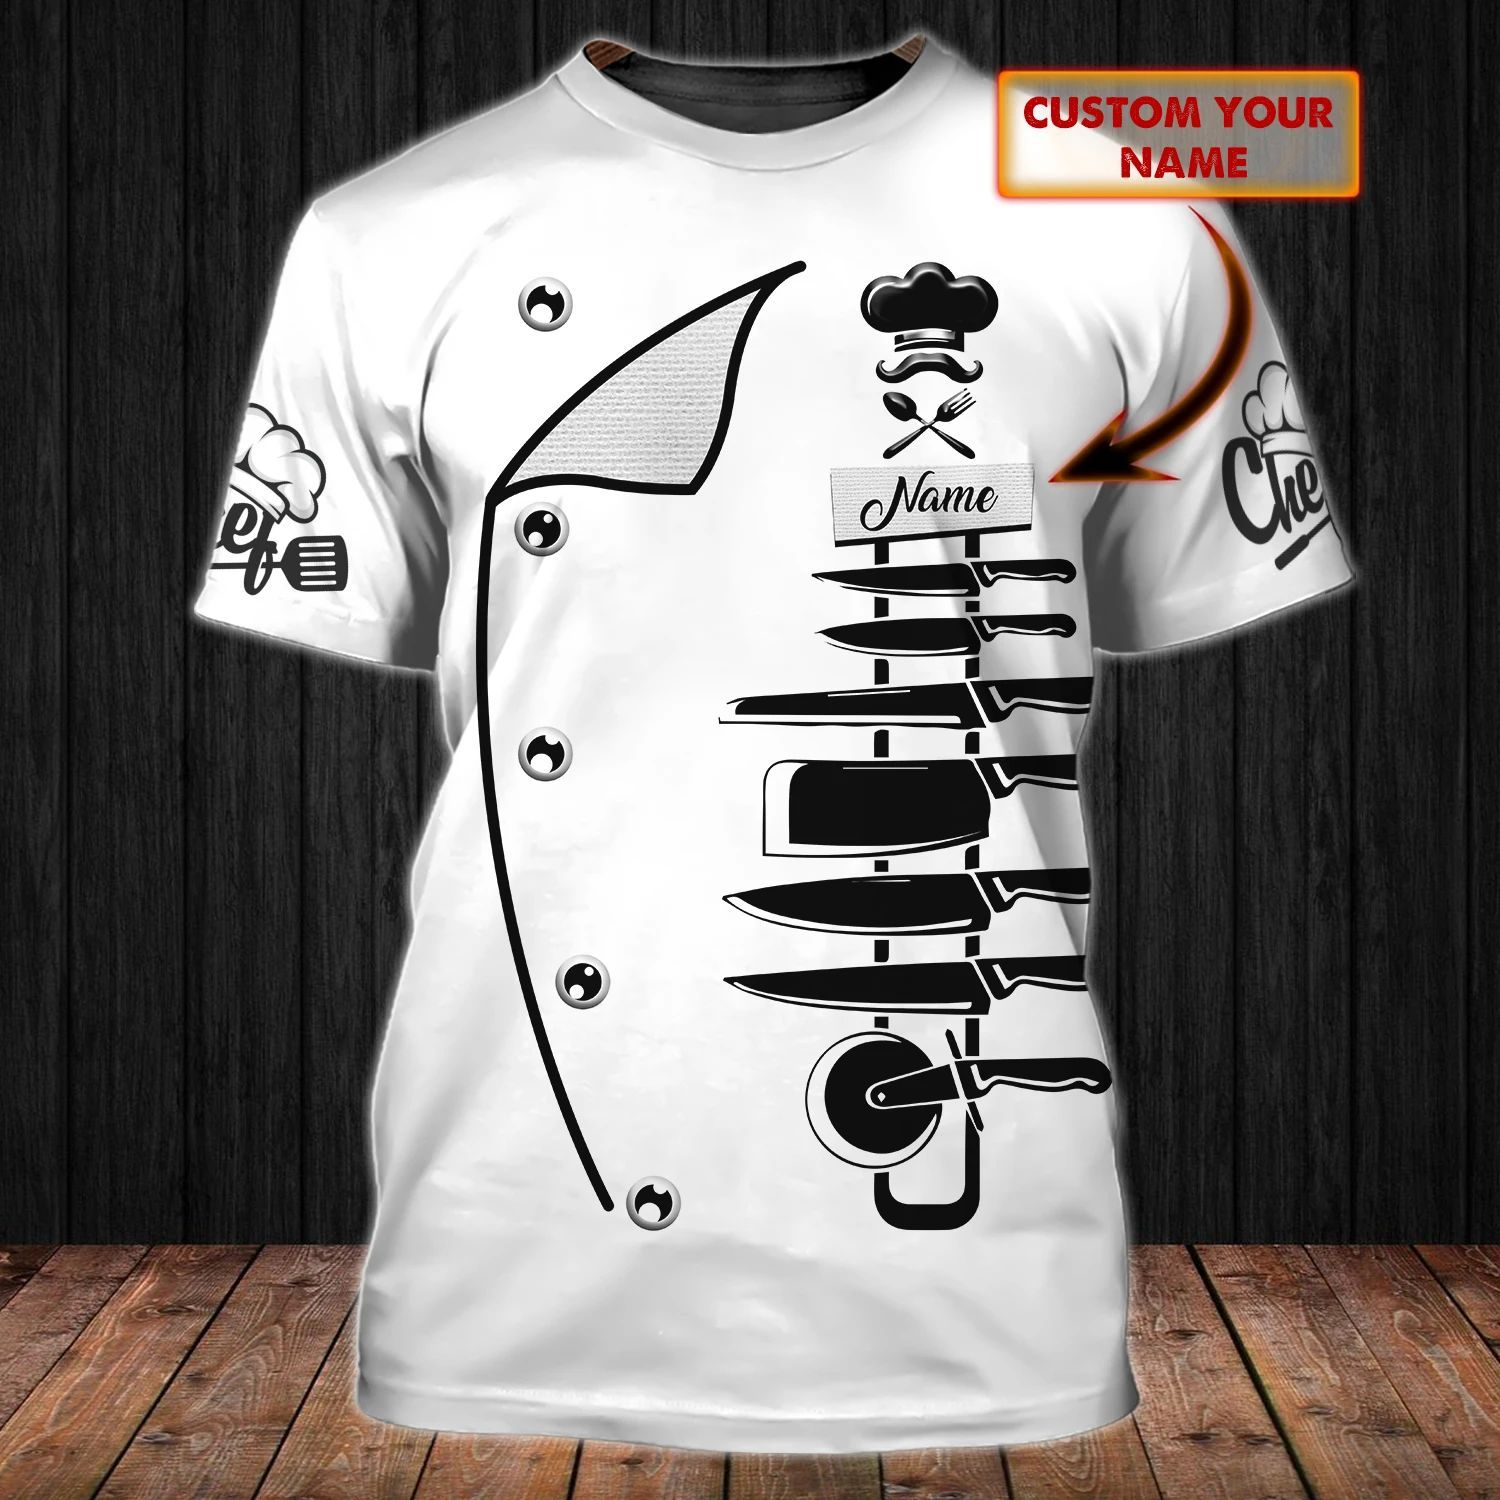 CHEF Costume Cosplay Personalized Name 3D All Over Print T-Shirt